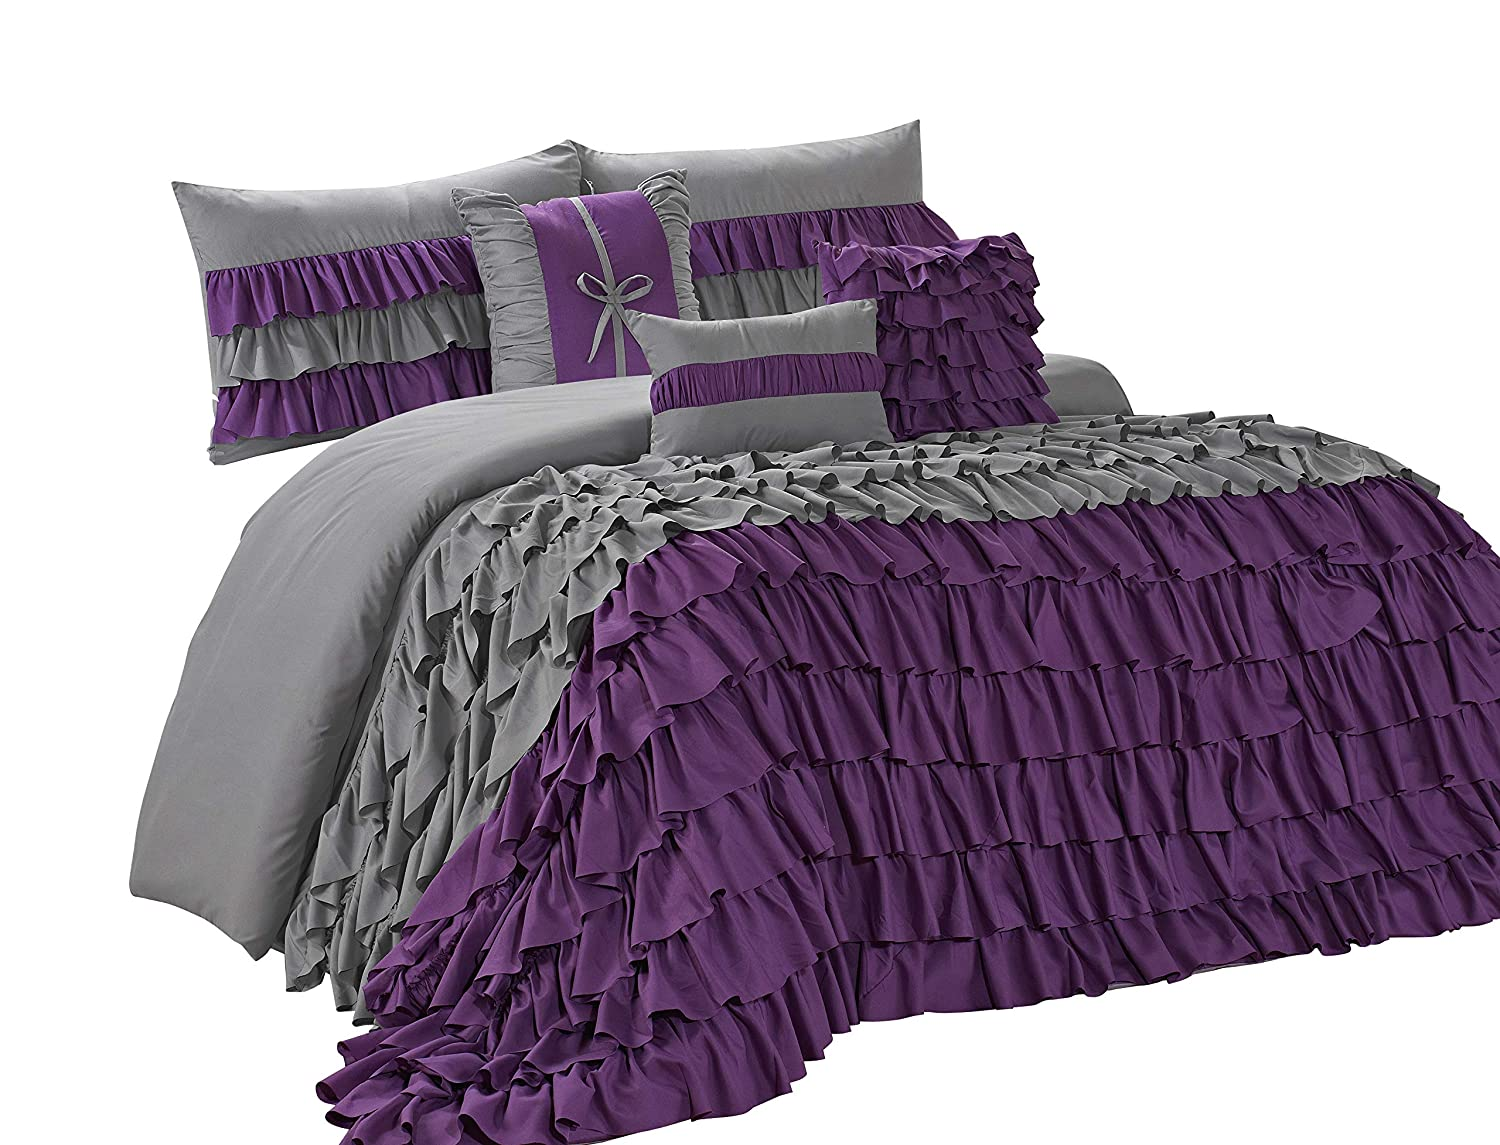 7 Piece BRISE Double Color Ruffled Comforter Set-Queen King Cal.King Size (Queen, Gray/Purple)